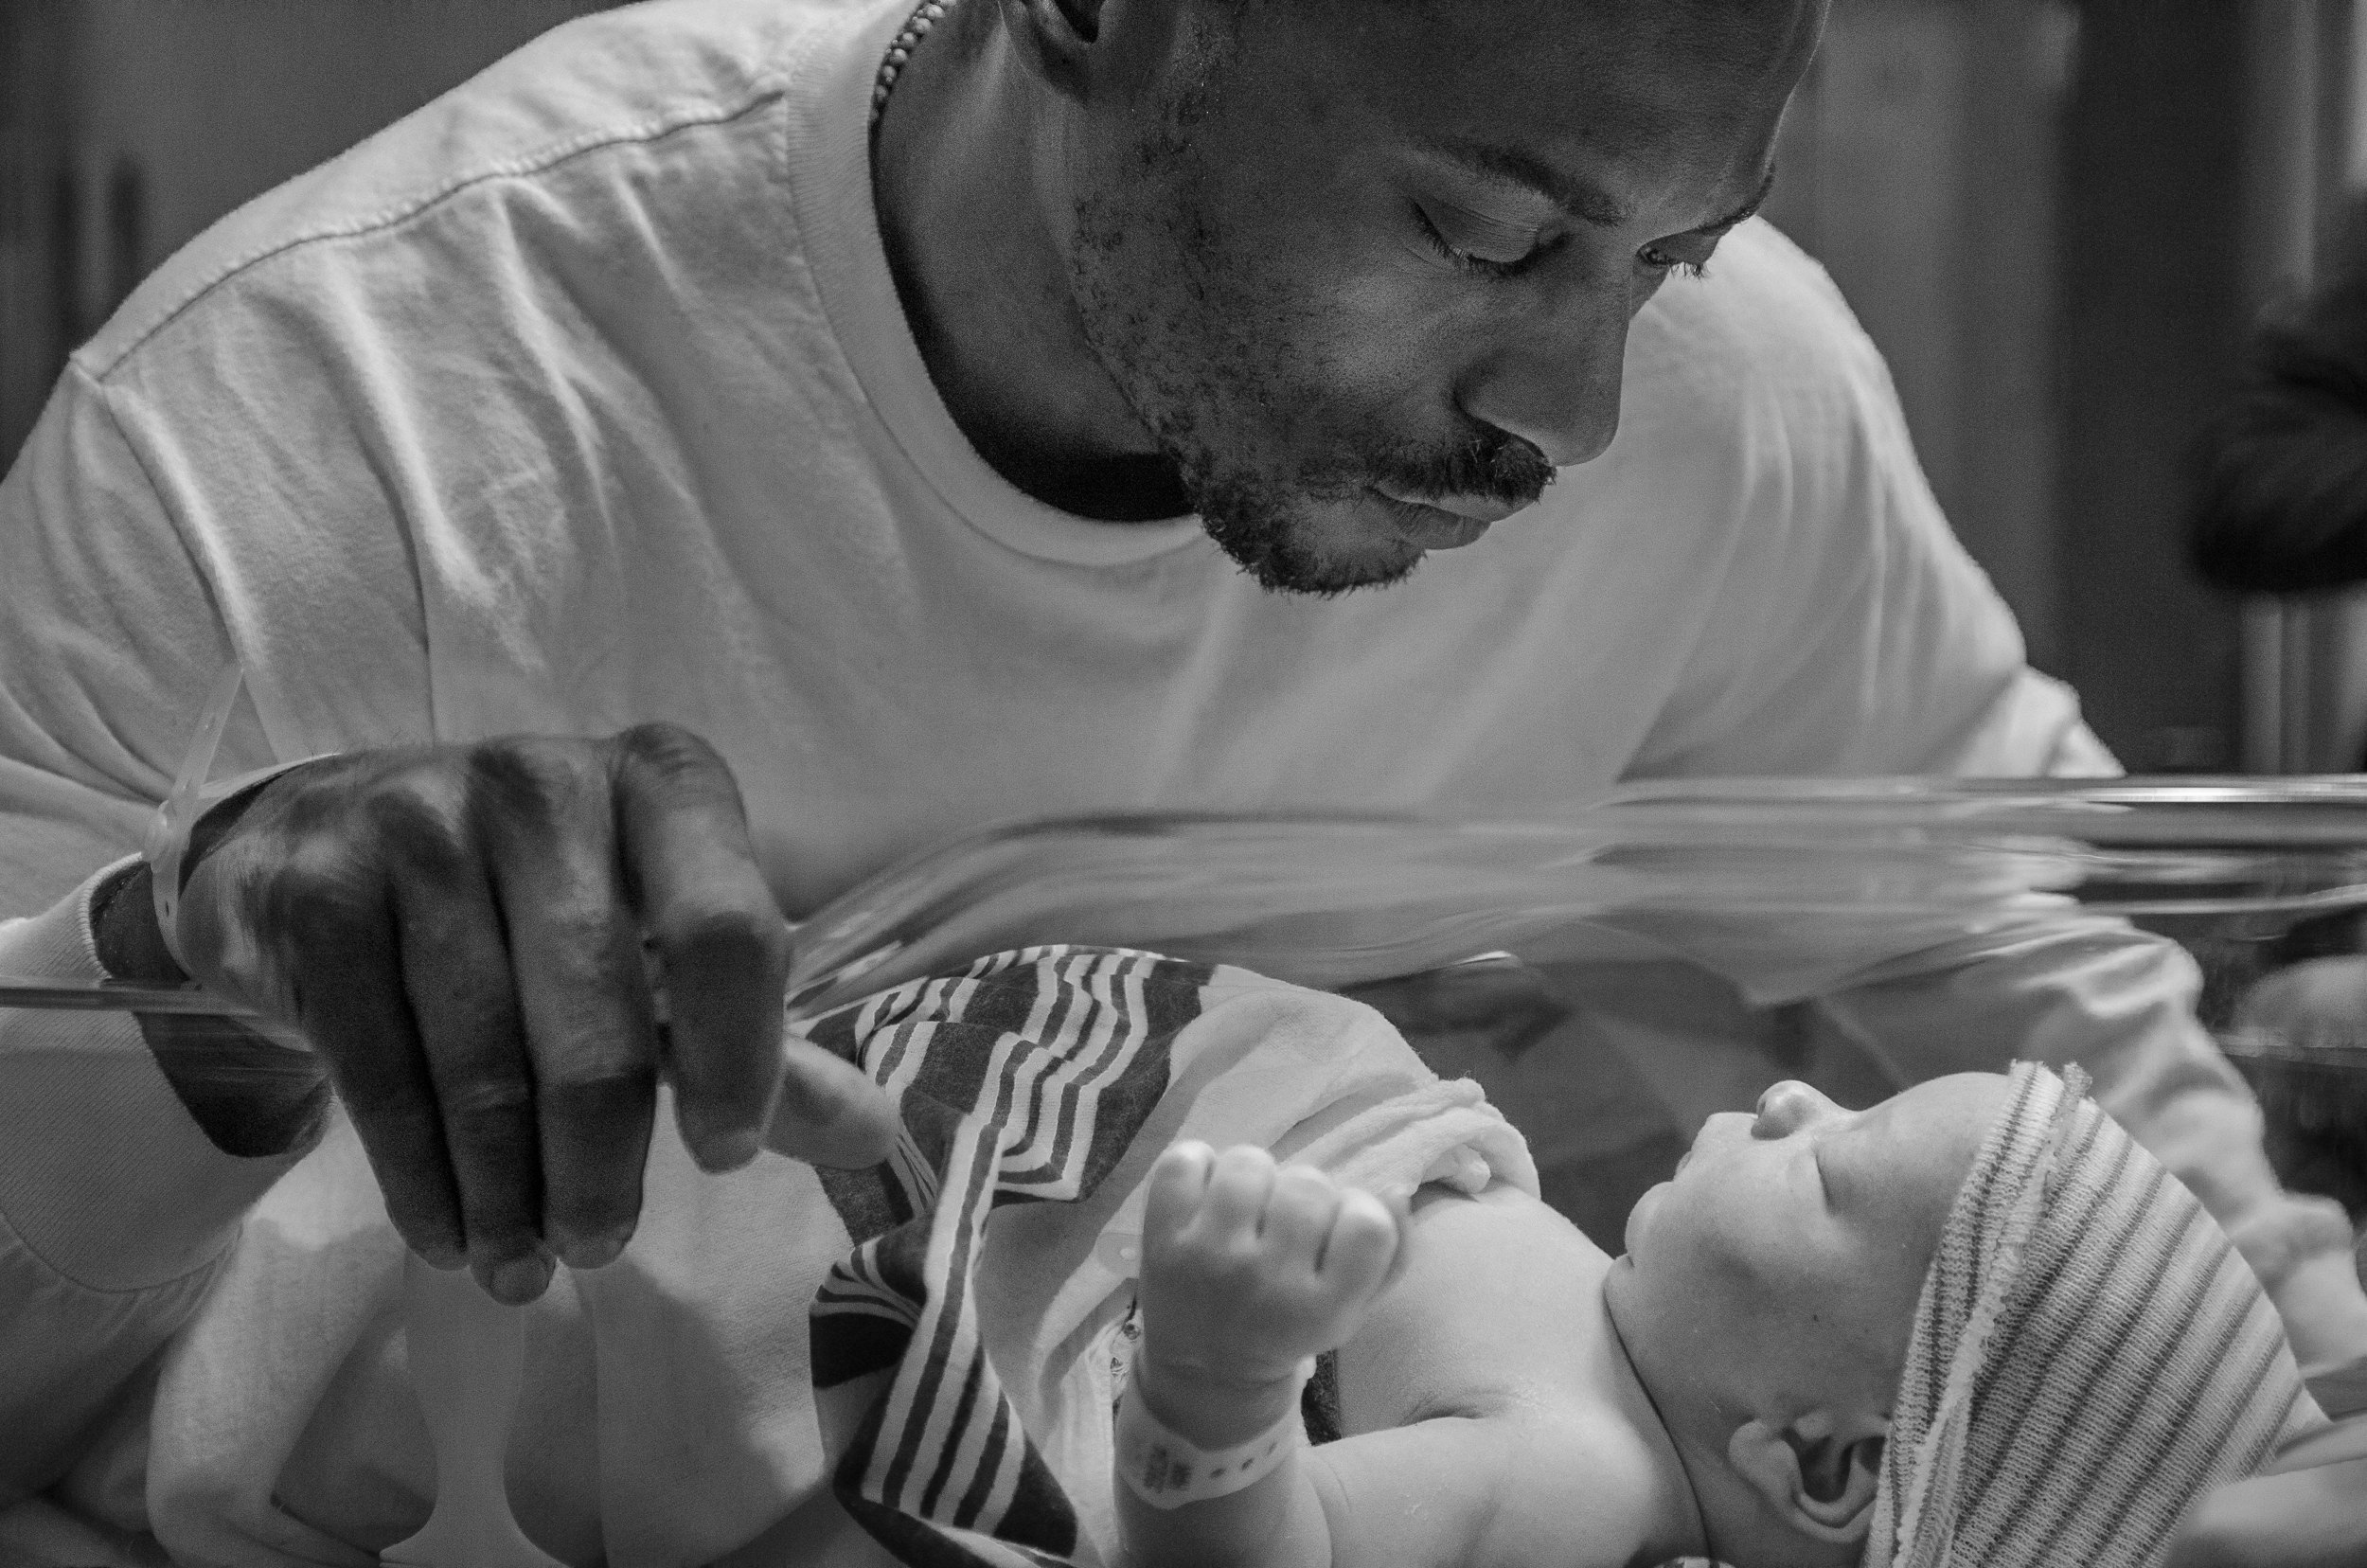 Molly Rees Photo - Black and White Documentary Newborn Photography in Denver, Colorado - father looking at baby in hospital bassinet by M. Menschel